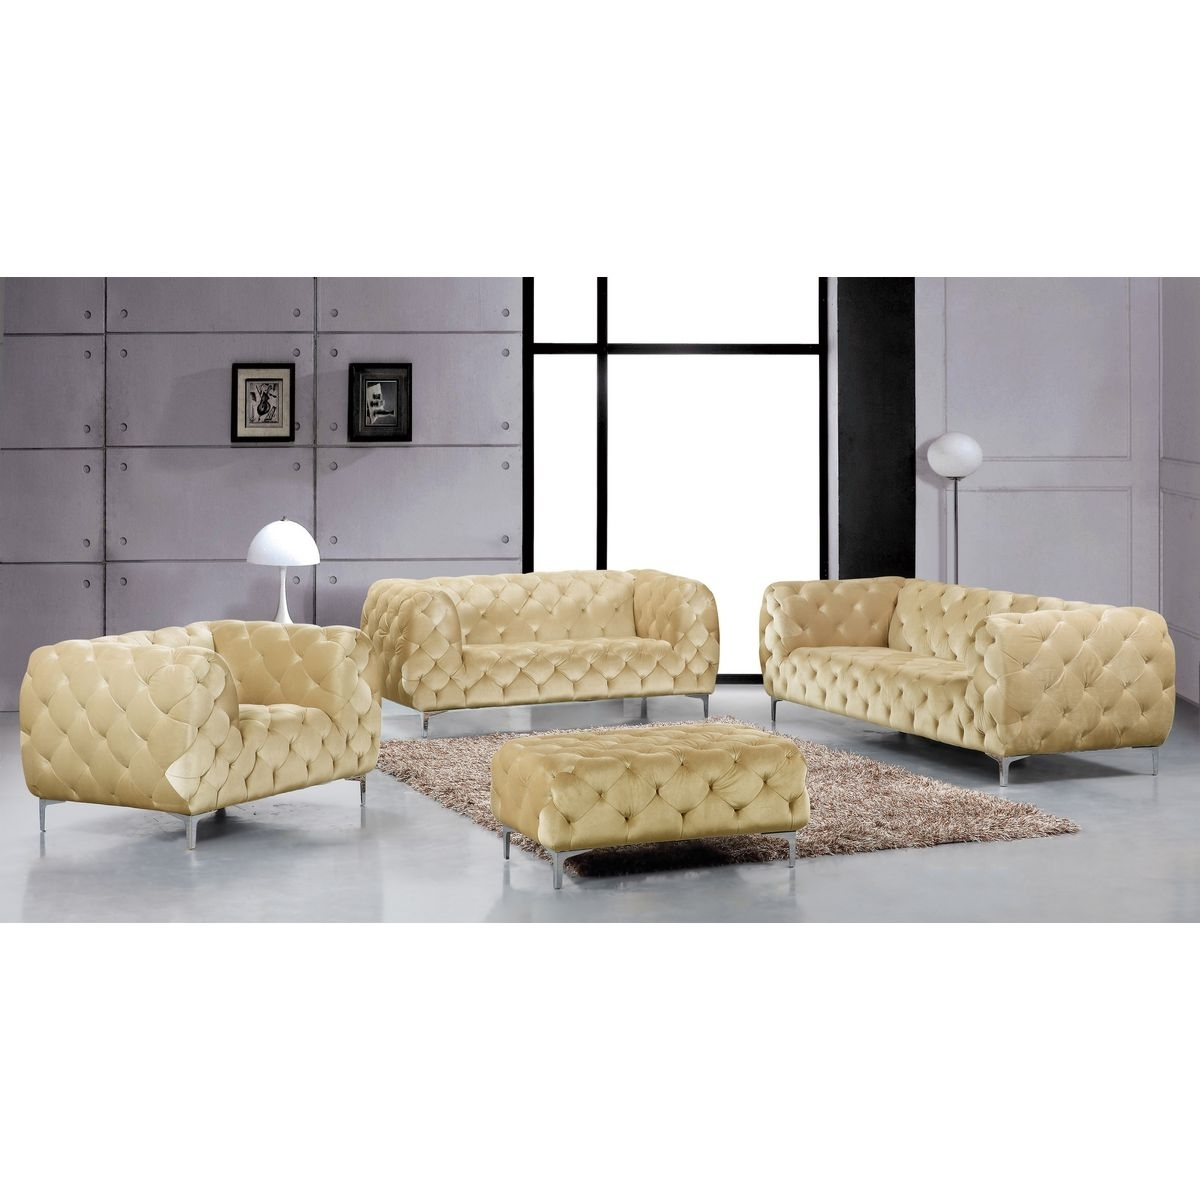 Latest Kijiji Kitchener Sectional Sofas Inside Furniture : Green Tufted Chaise Lounge Furniture Making Ottawa (View 4 of 15)